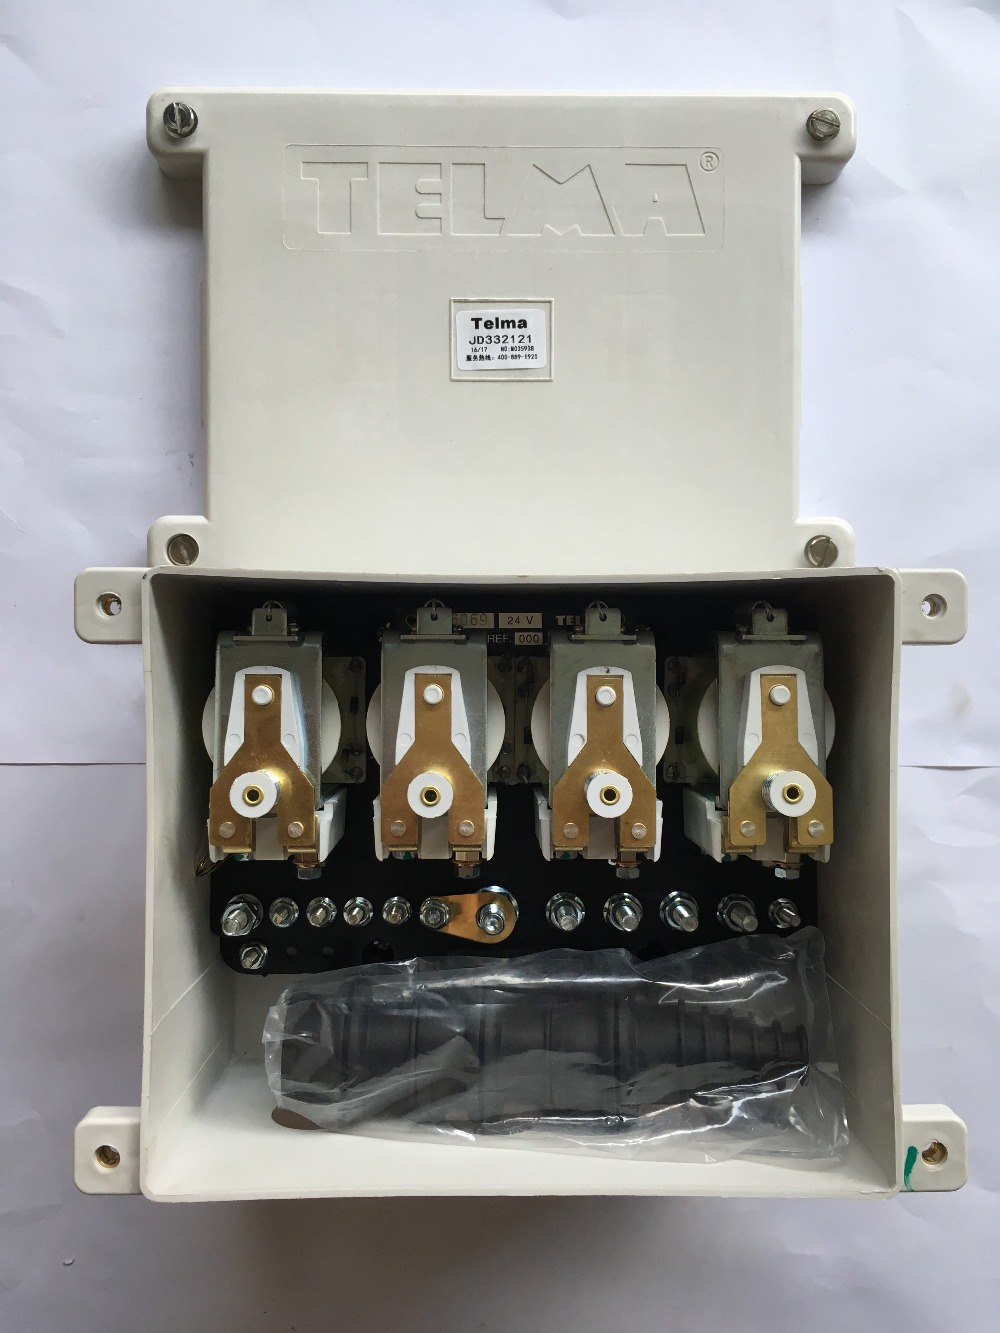 hight resolution of retarder relay jd332121 with four stalls for telma retarder for yutong kinglong zhongtong bus free shipping in sensors switches from automobiles